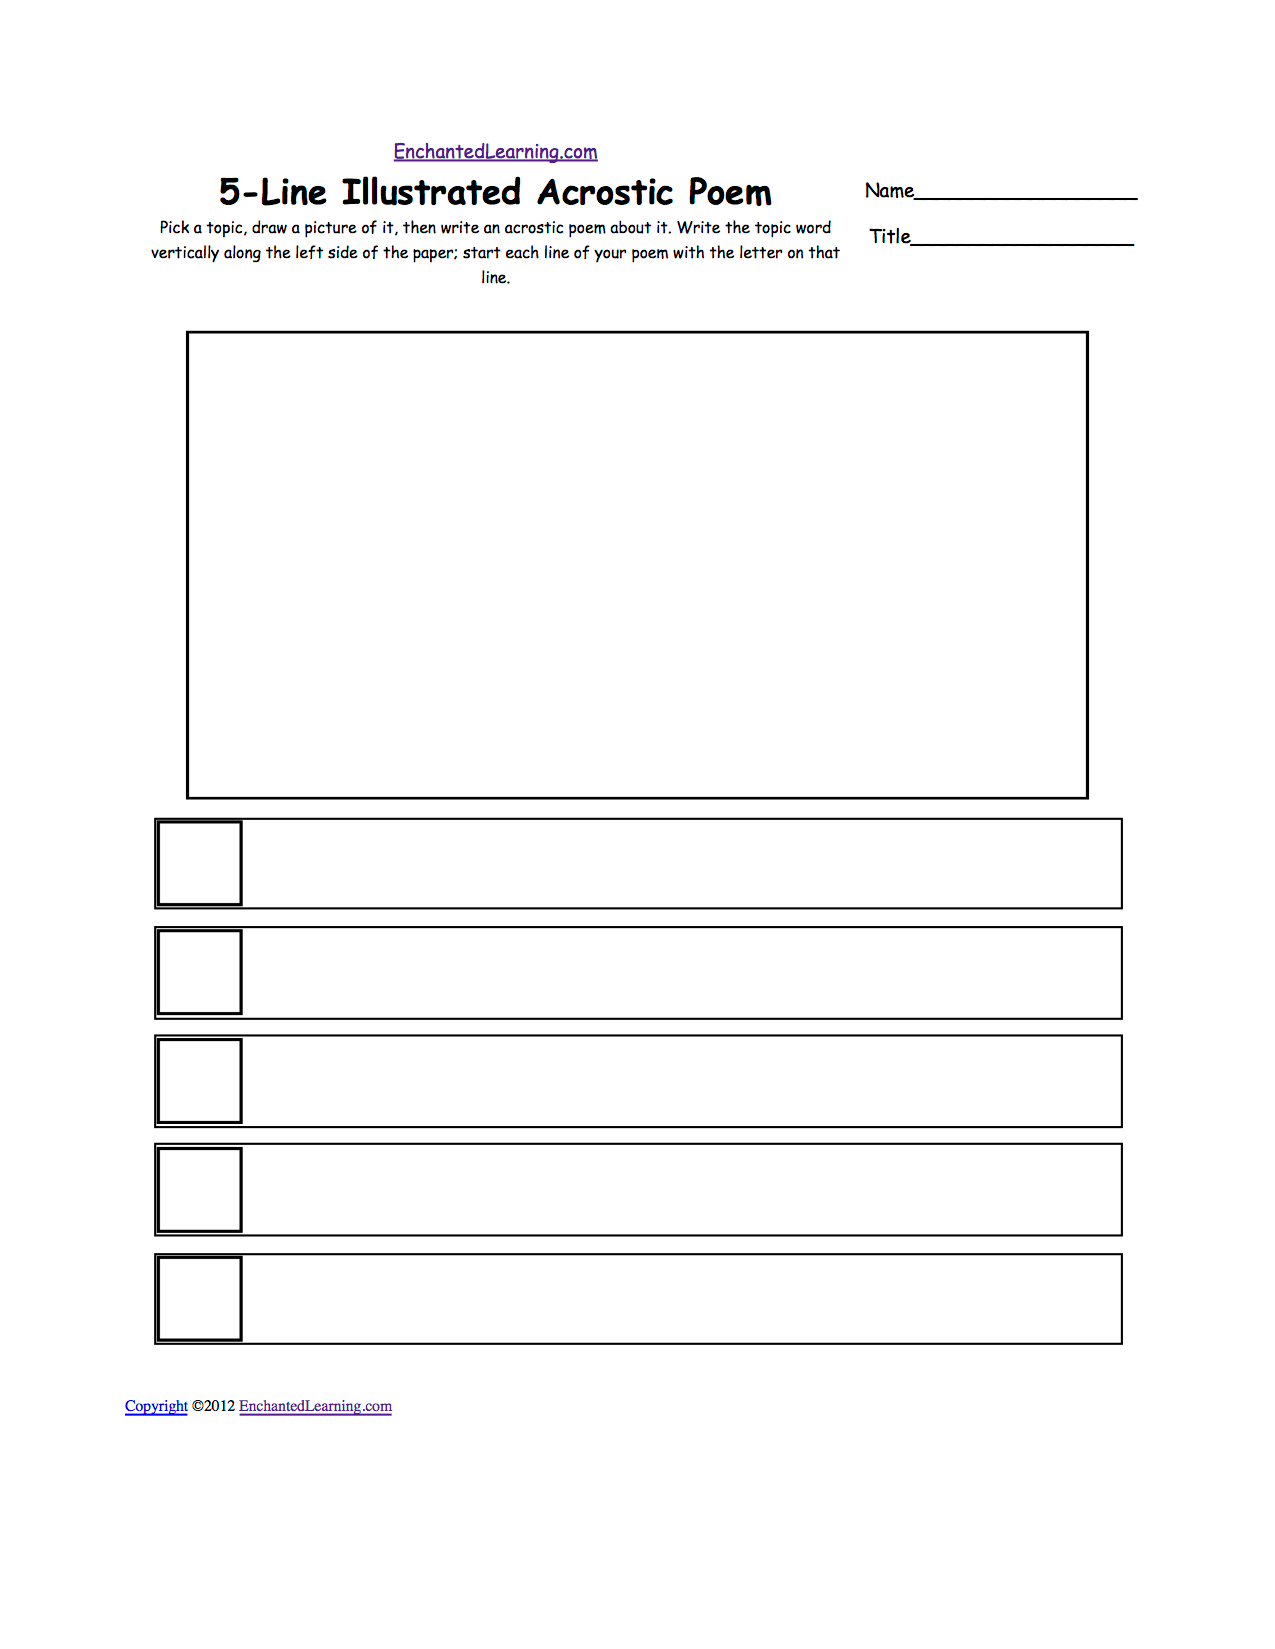 Blank Illustrated Acrostic Poem Worksheets Worksheet Printout